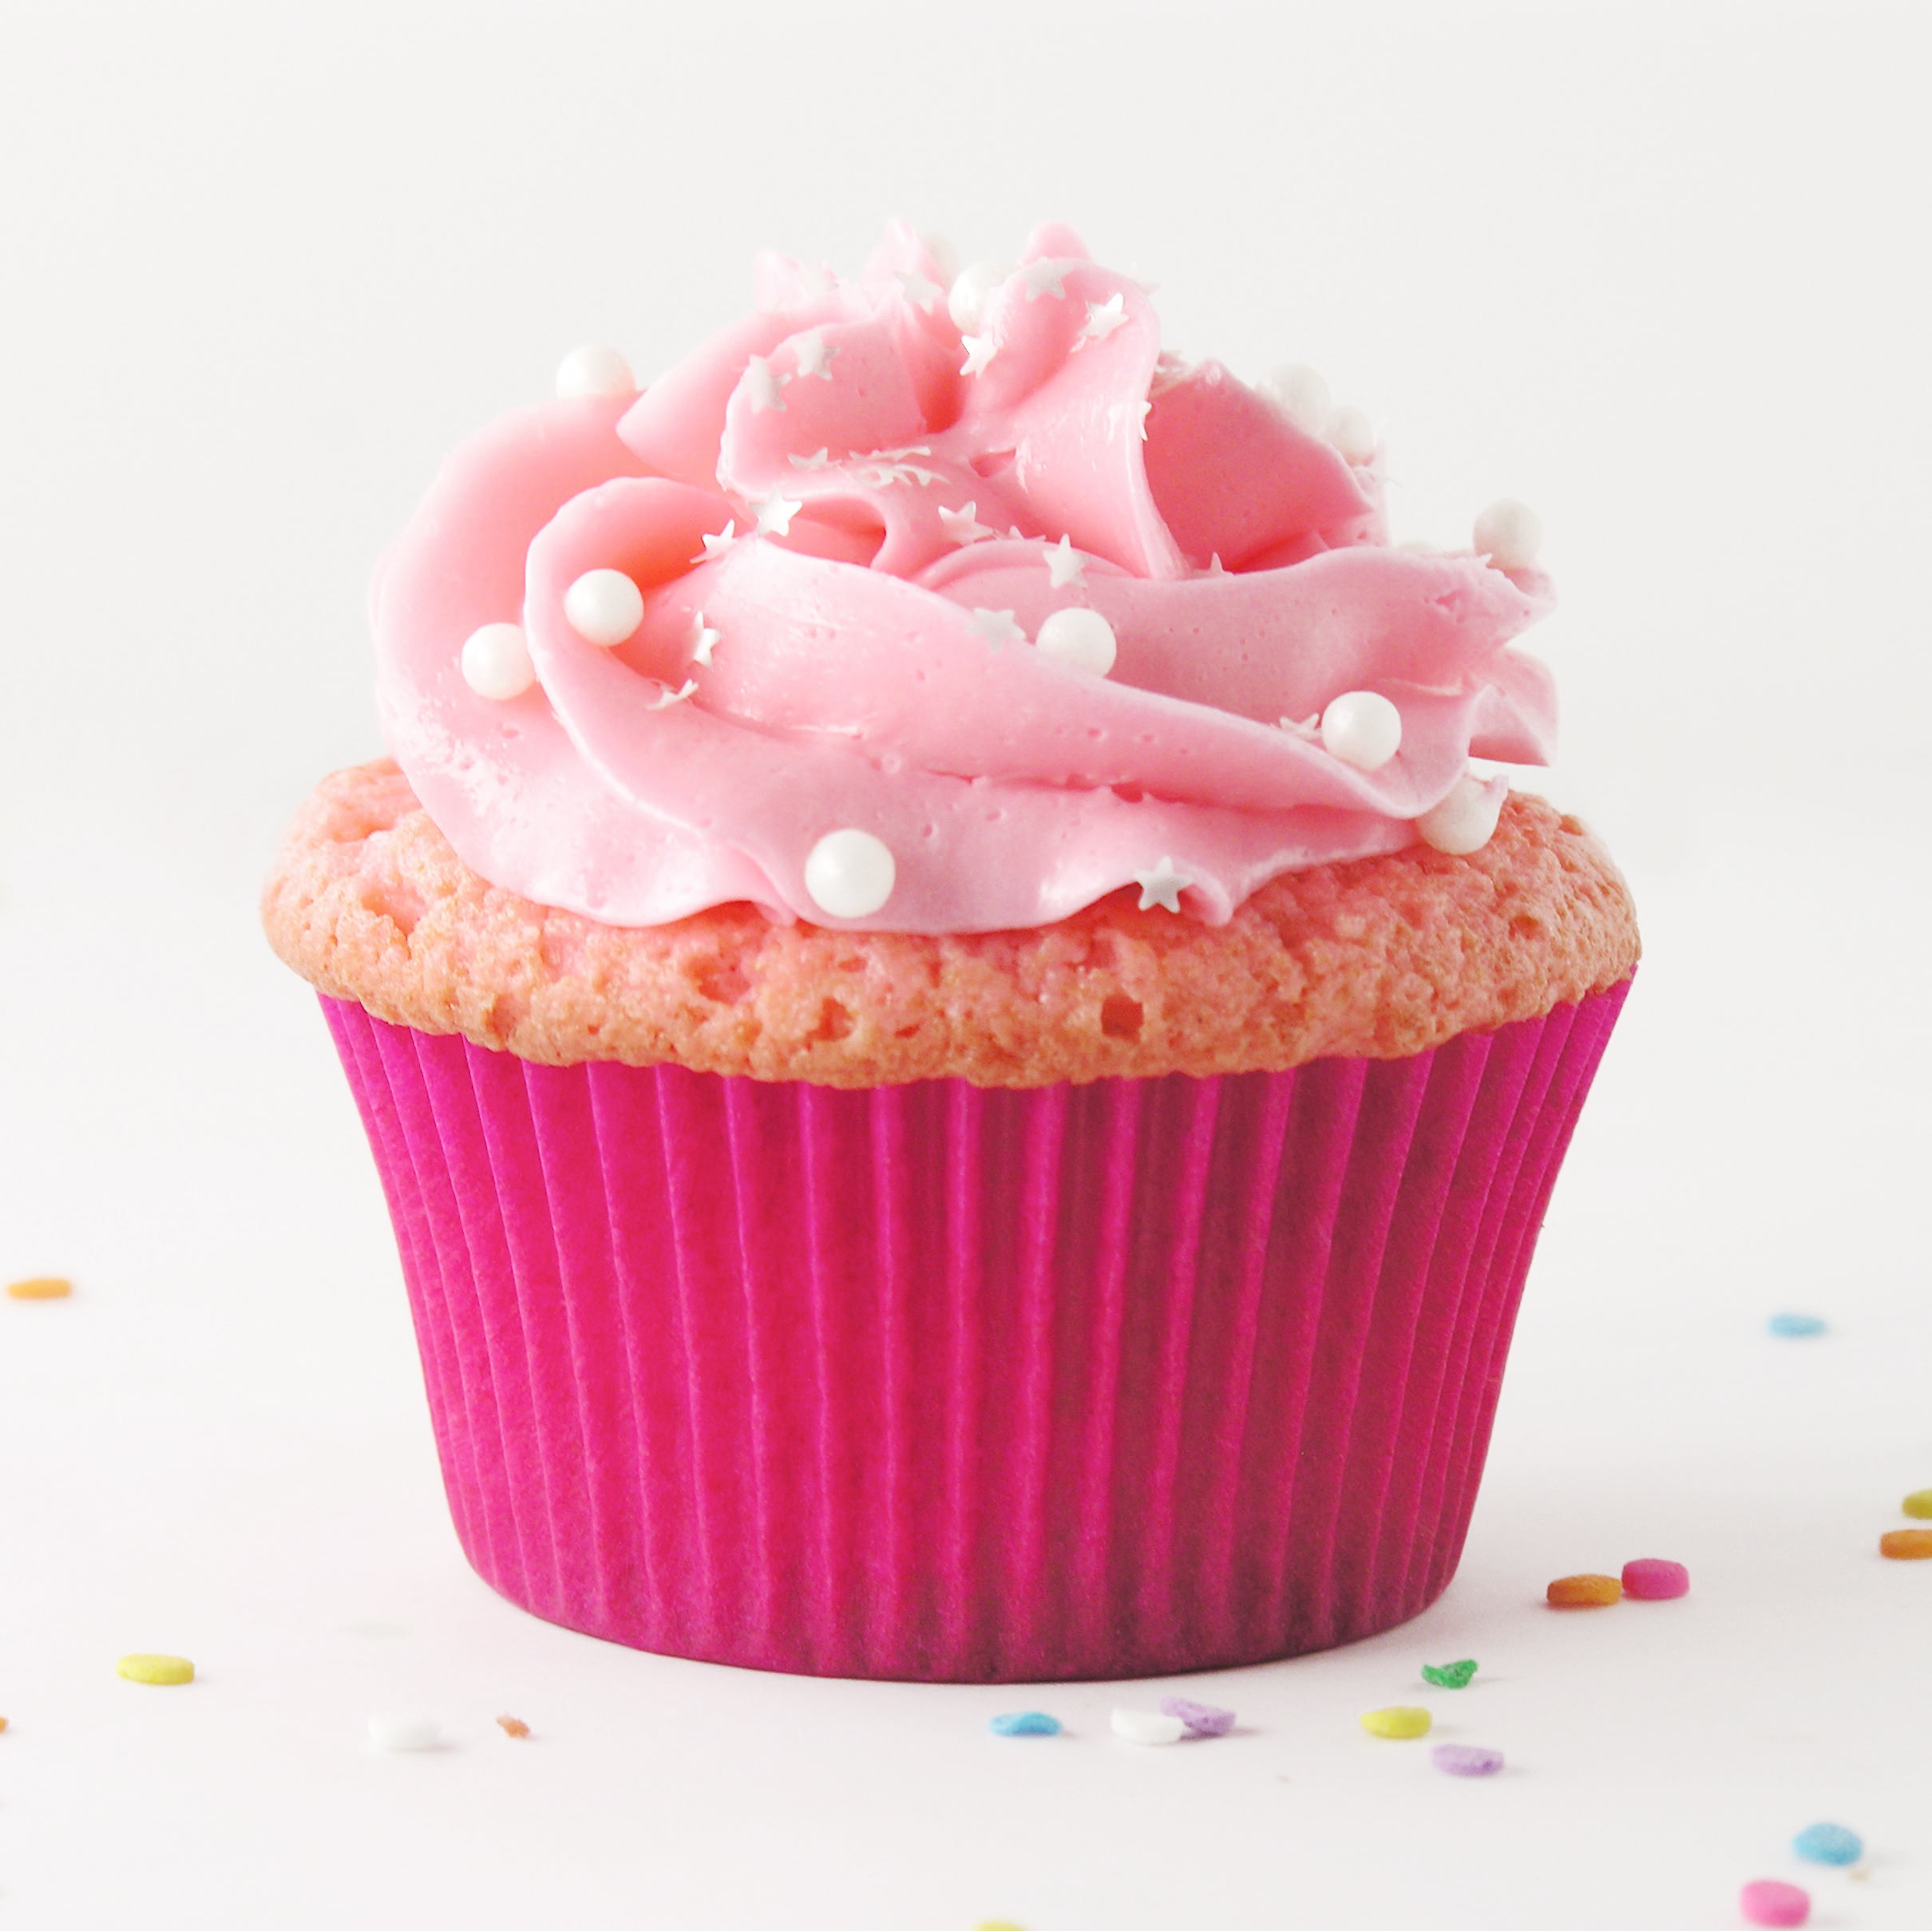 cup cake s - photo #8